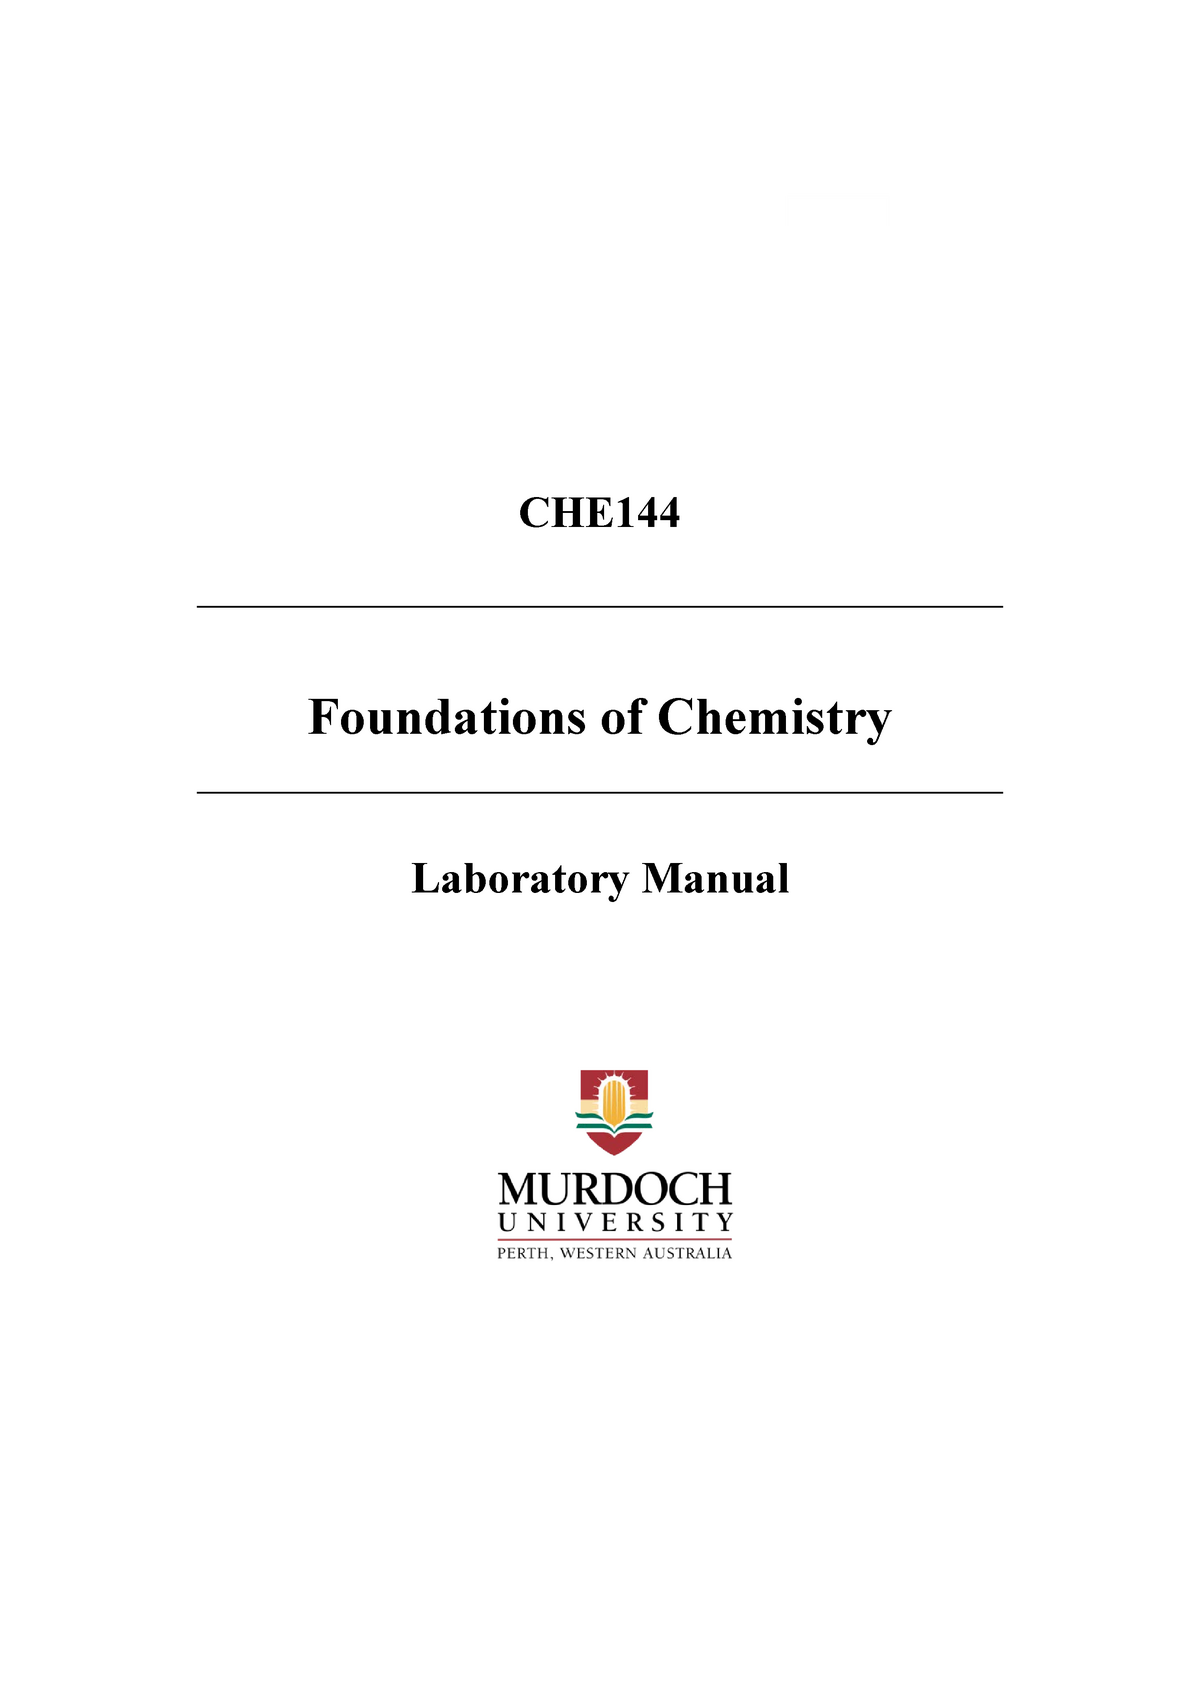 CHE144 lab manual - CHE144: Foundations of Chemistry - StuDocu on